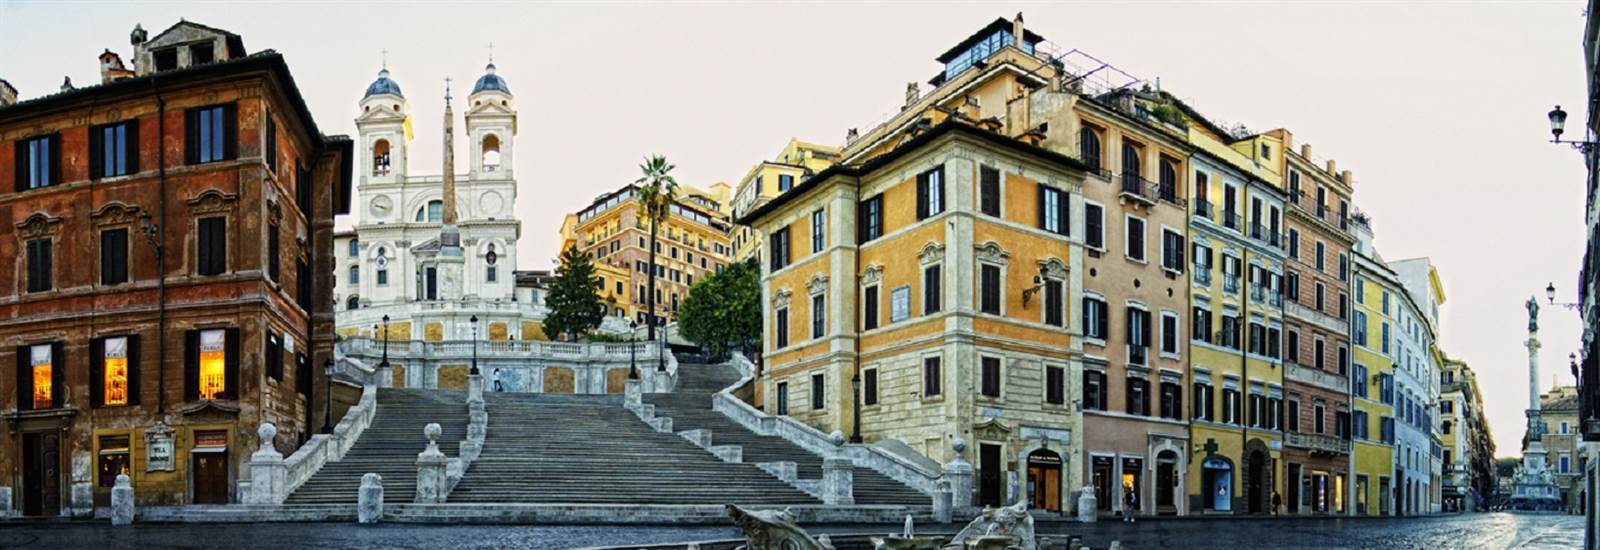 5 Sterne-Hotel in Rom | Hassler Roma